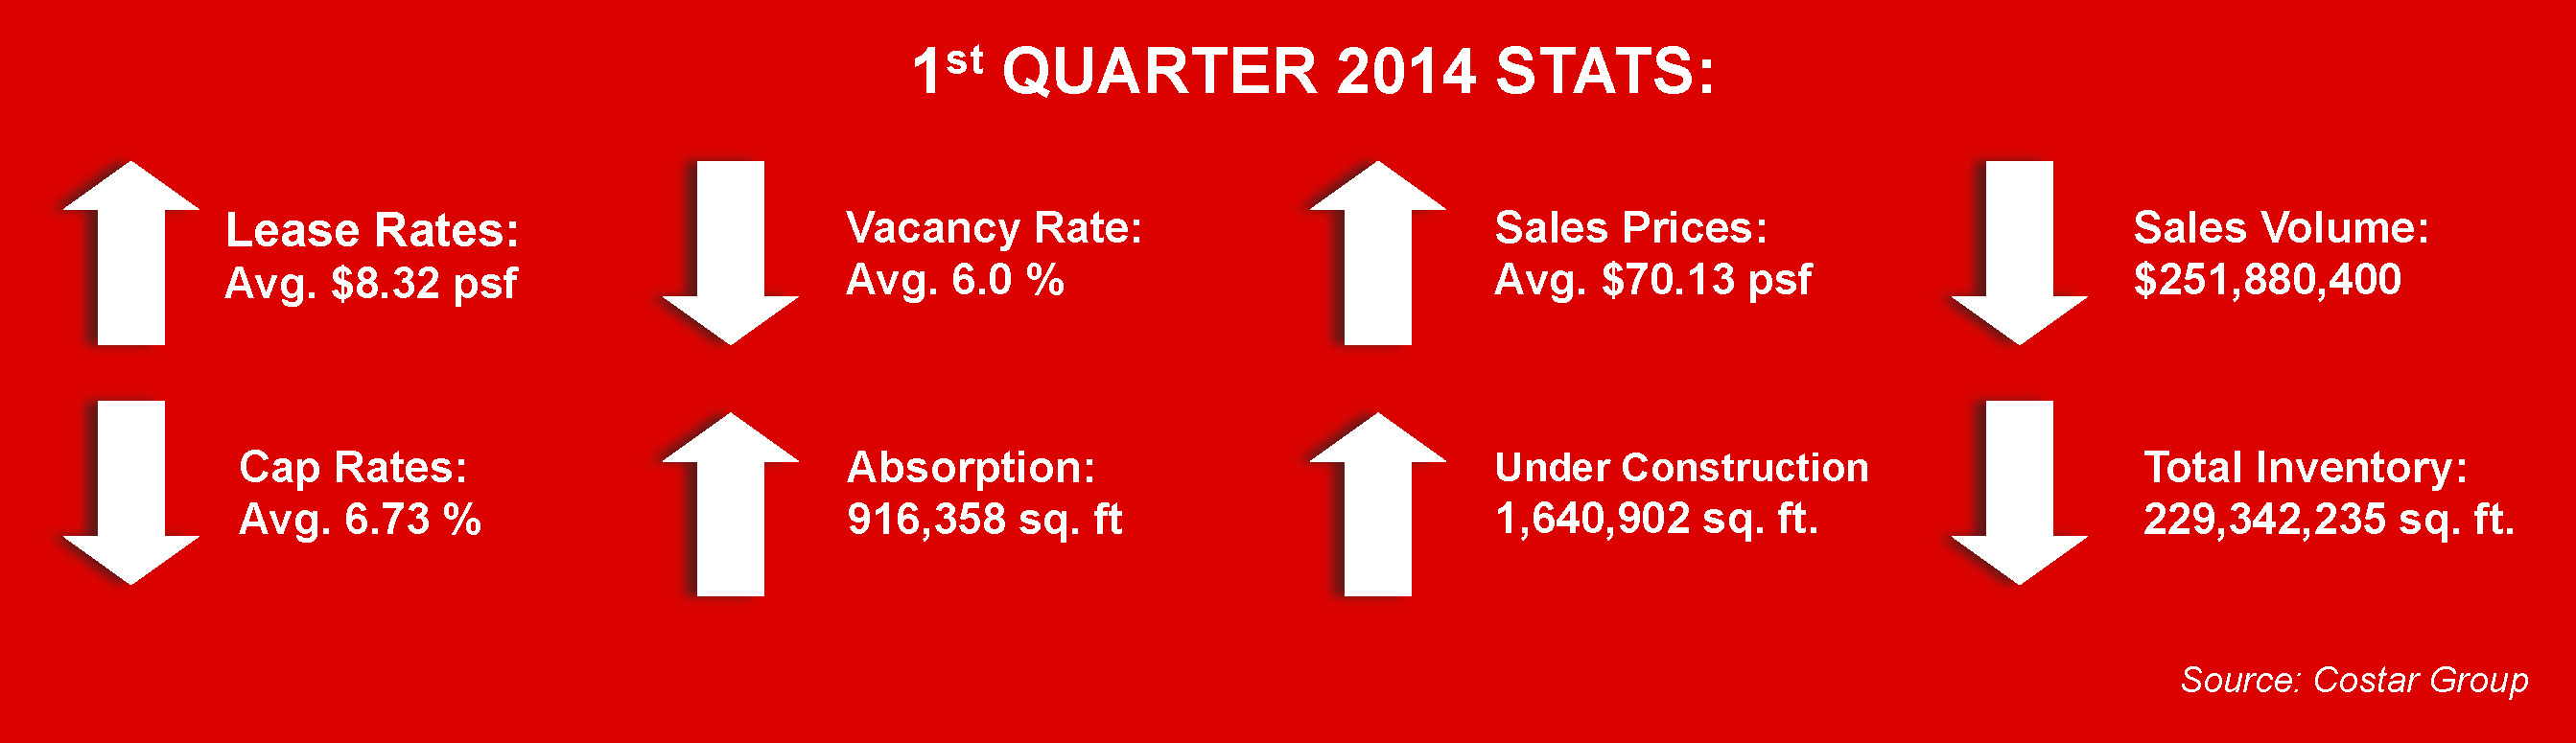 miami industrial real estate market 1st quarter 2014